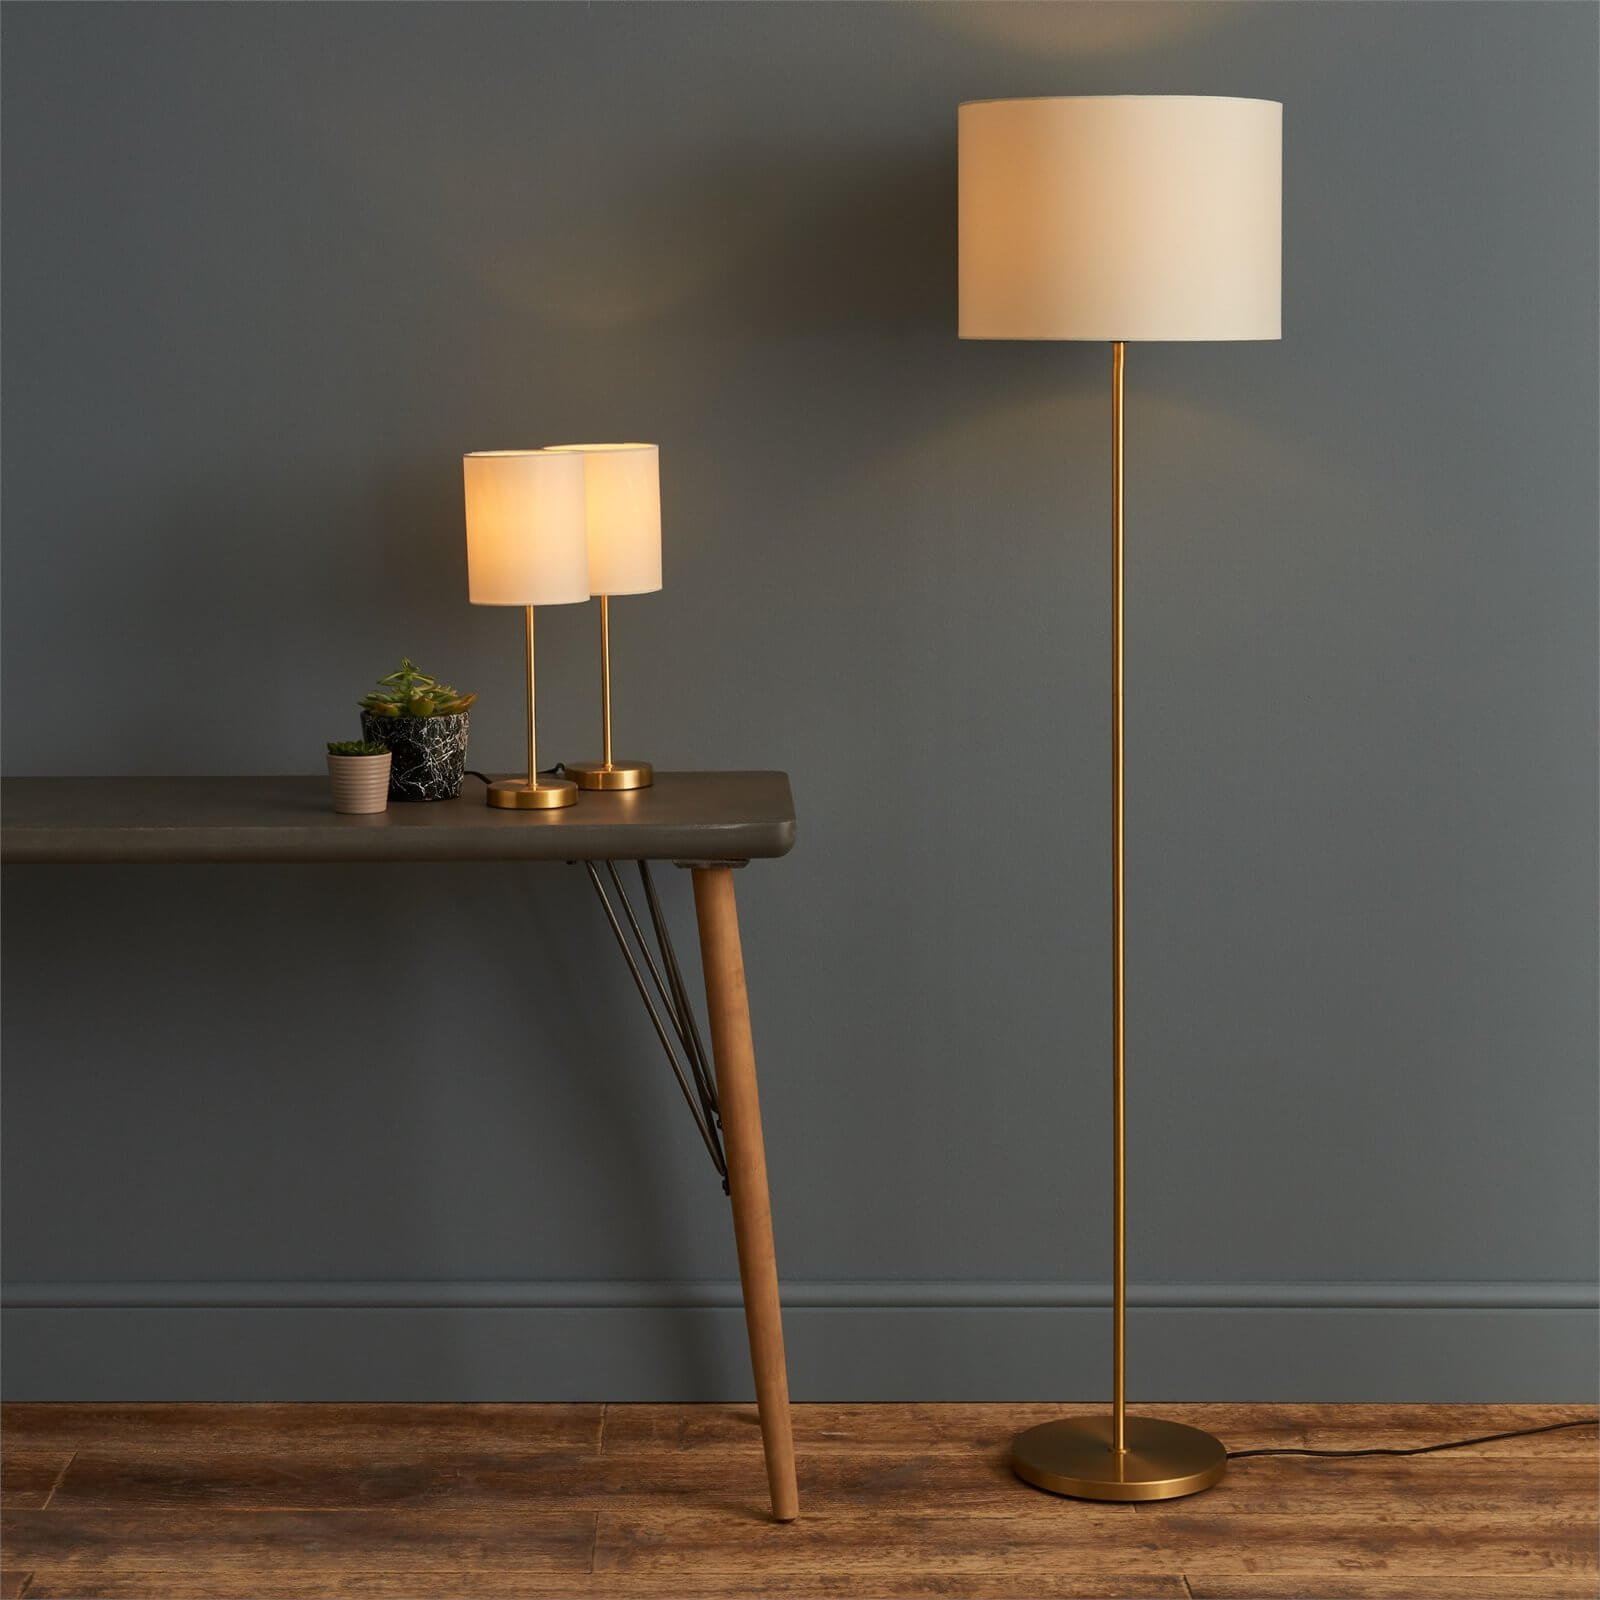 Floor Lamp & Matching Table Lamps Set - Gold and Cream